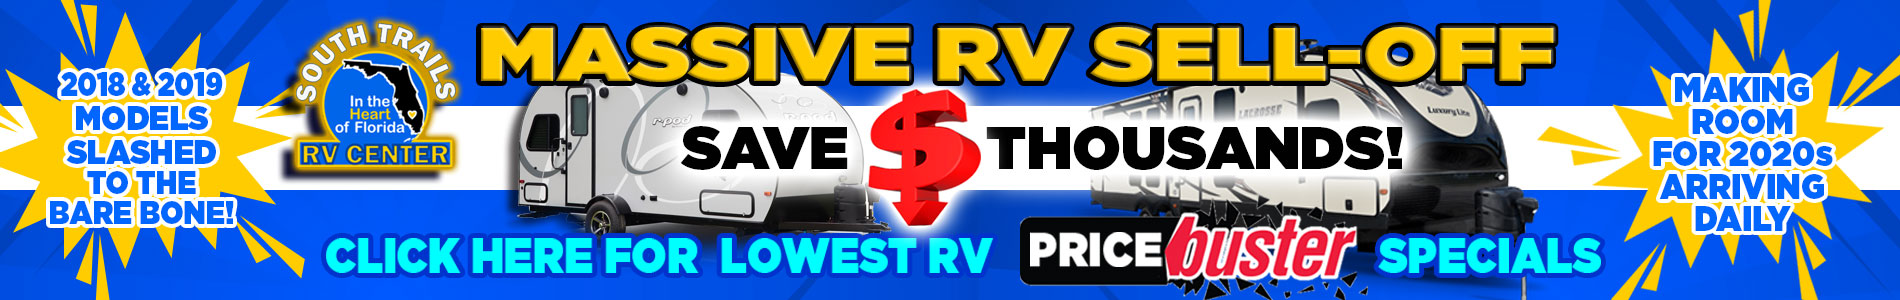 Massive RV Sell-Off